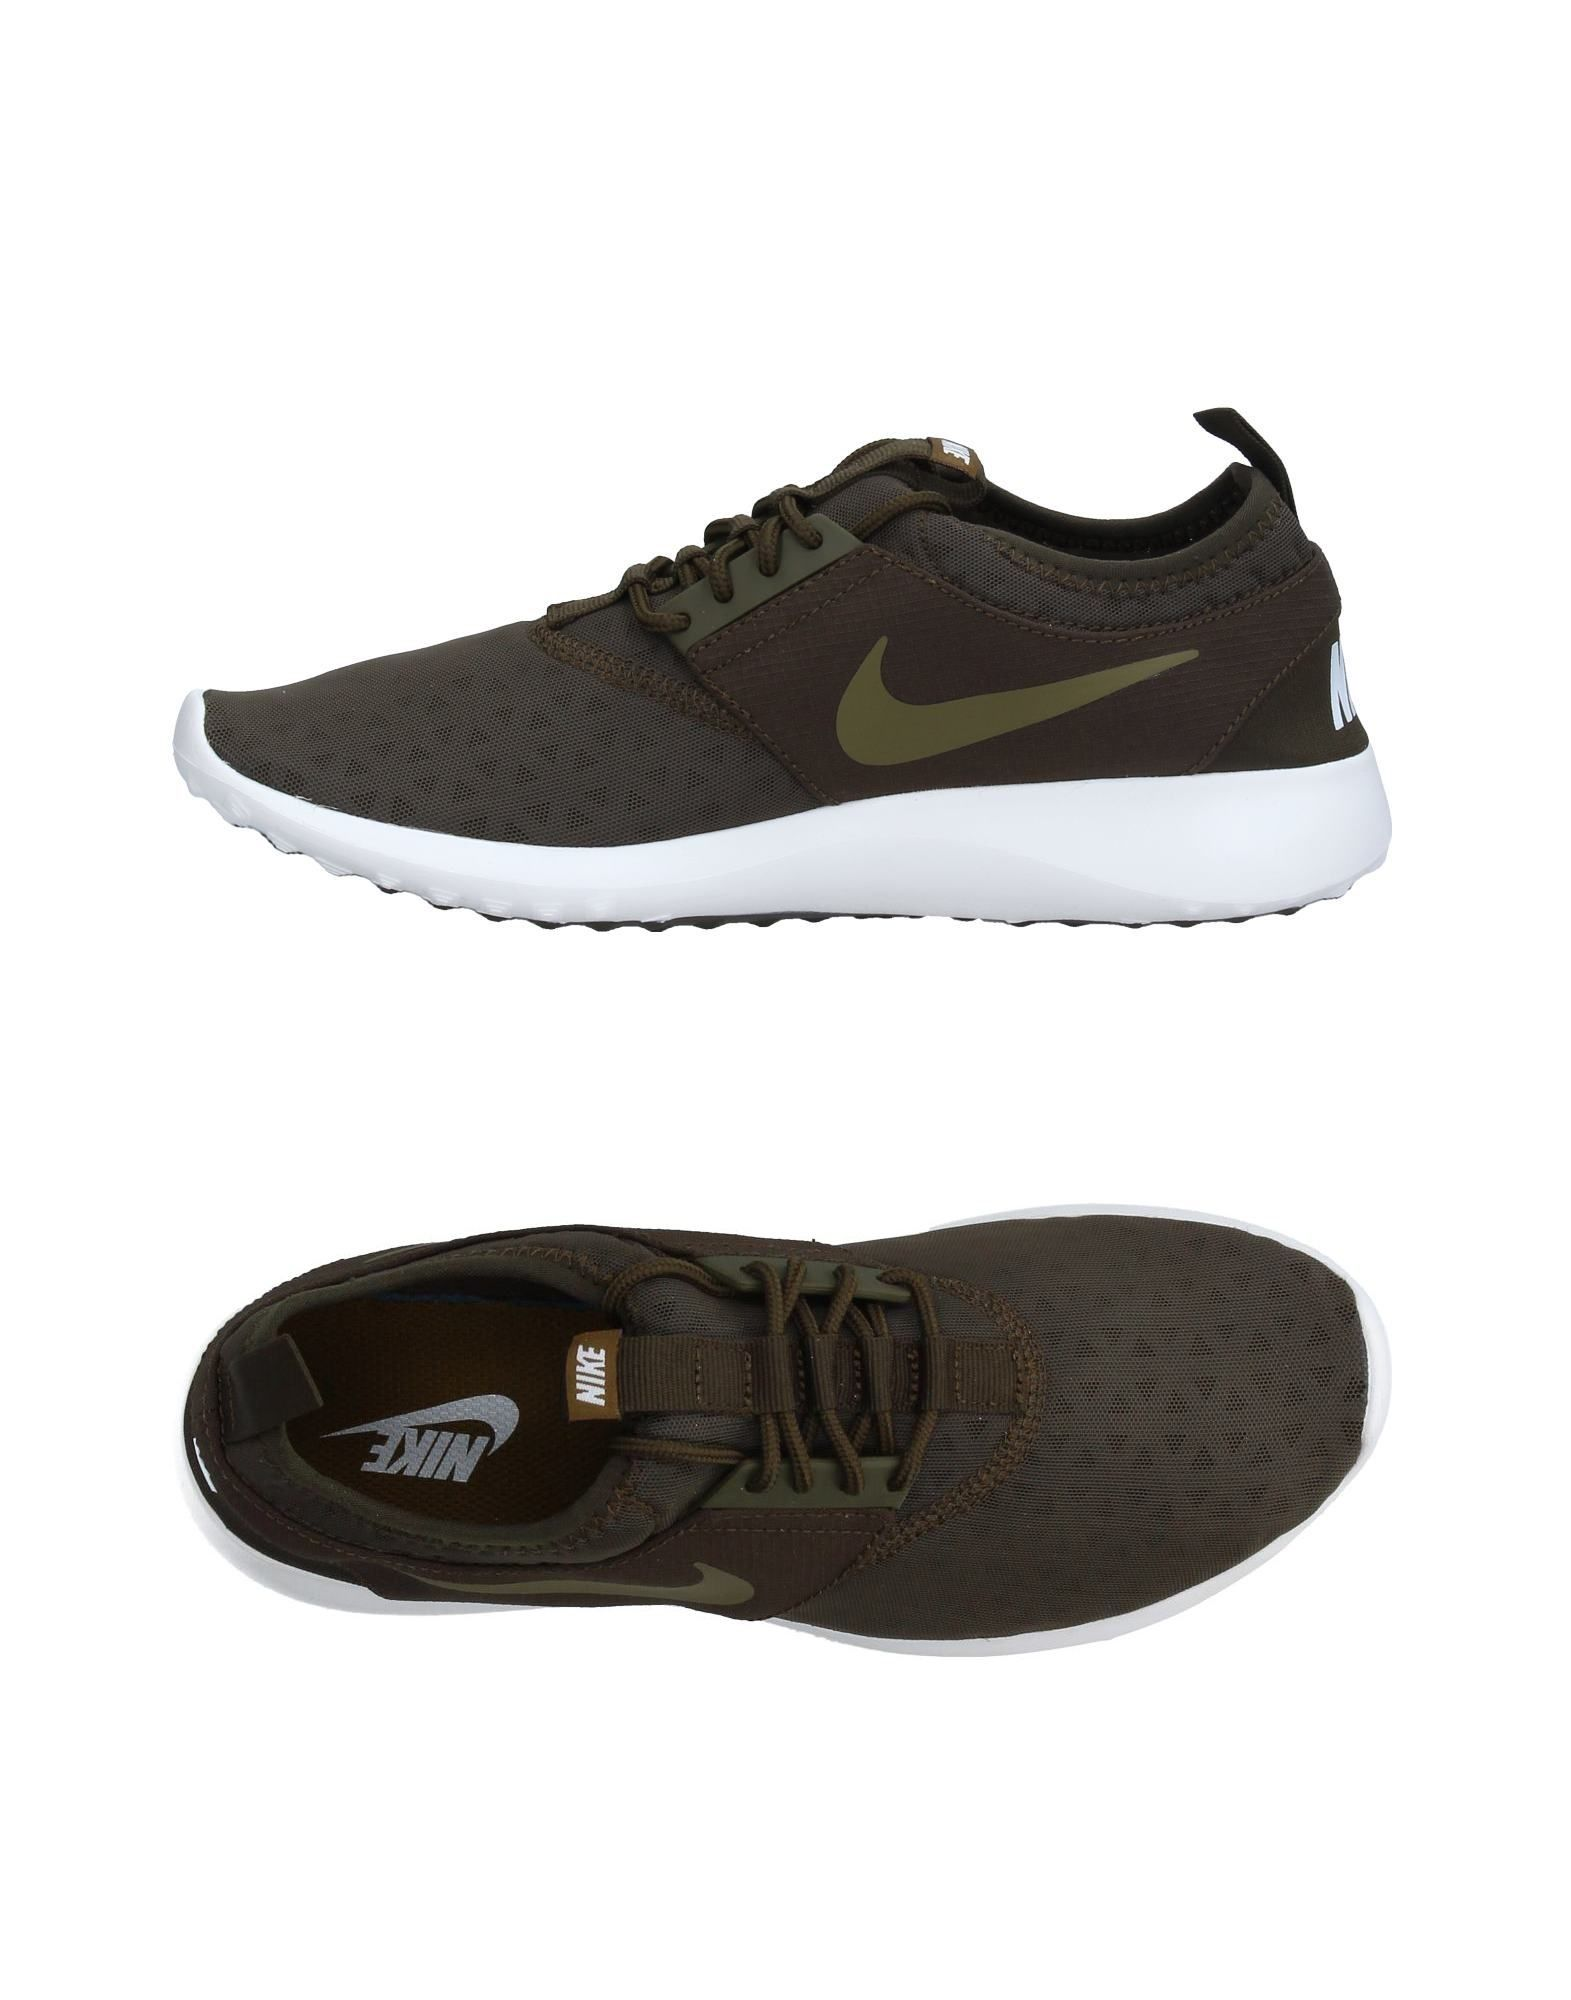 1c567cbf686b5 ... amazon nike women shop online running shoes trainers sneakers and more  at yoox united states 1498f